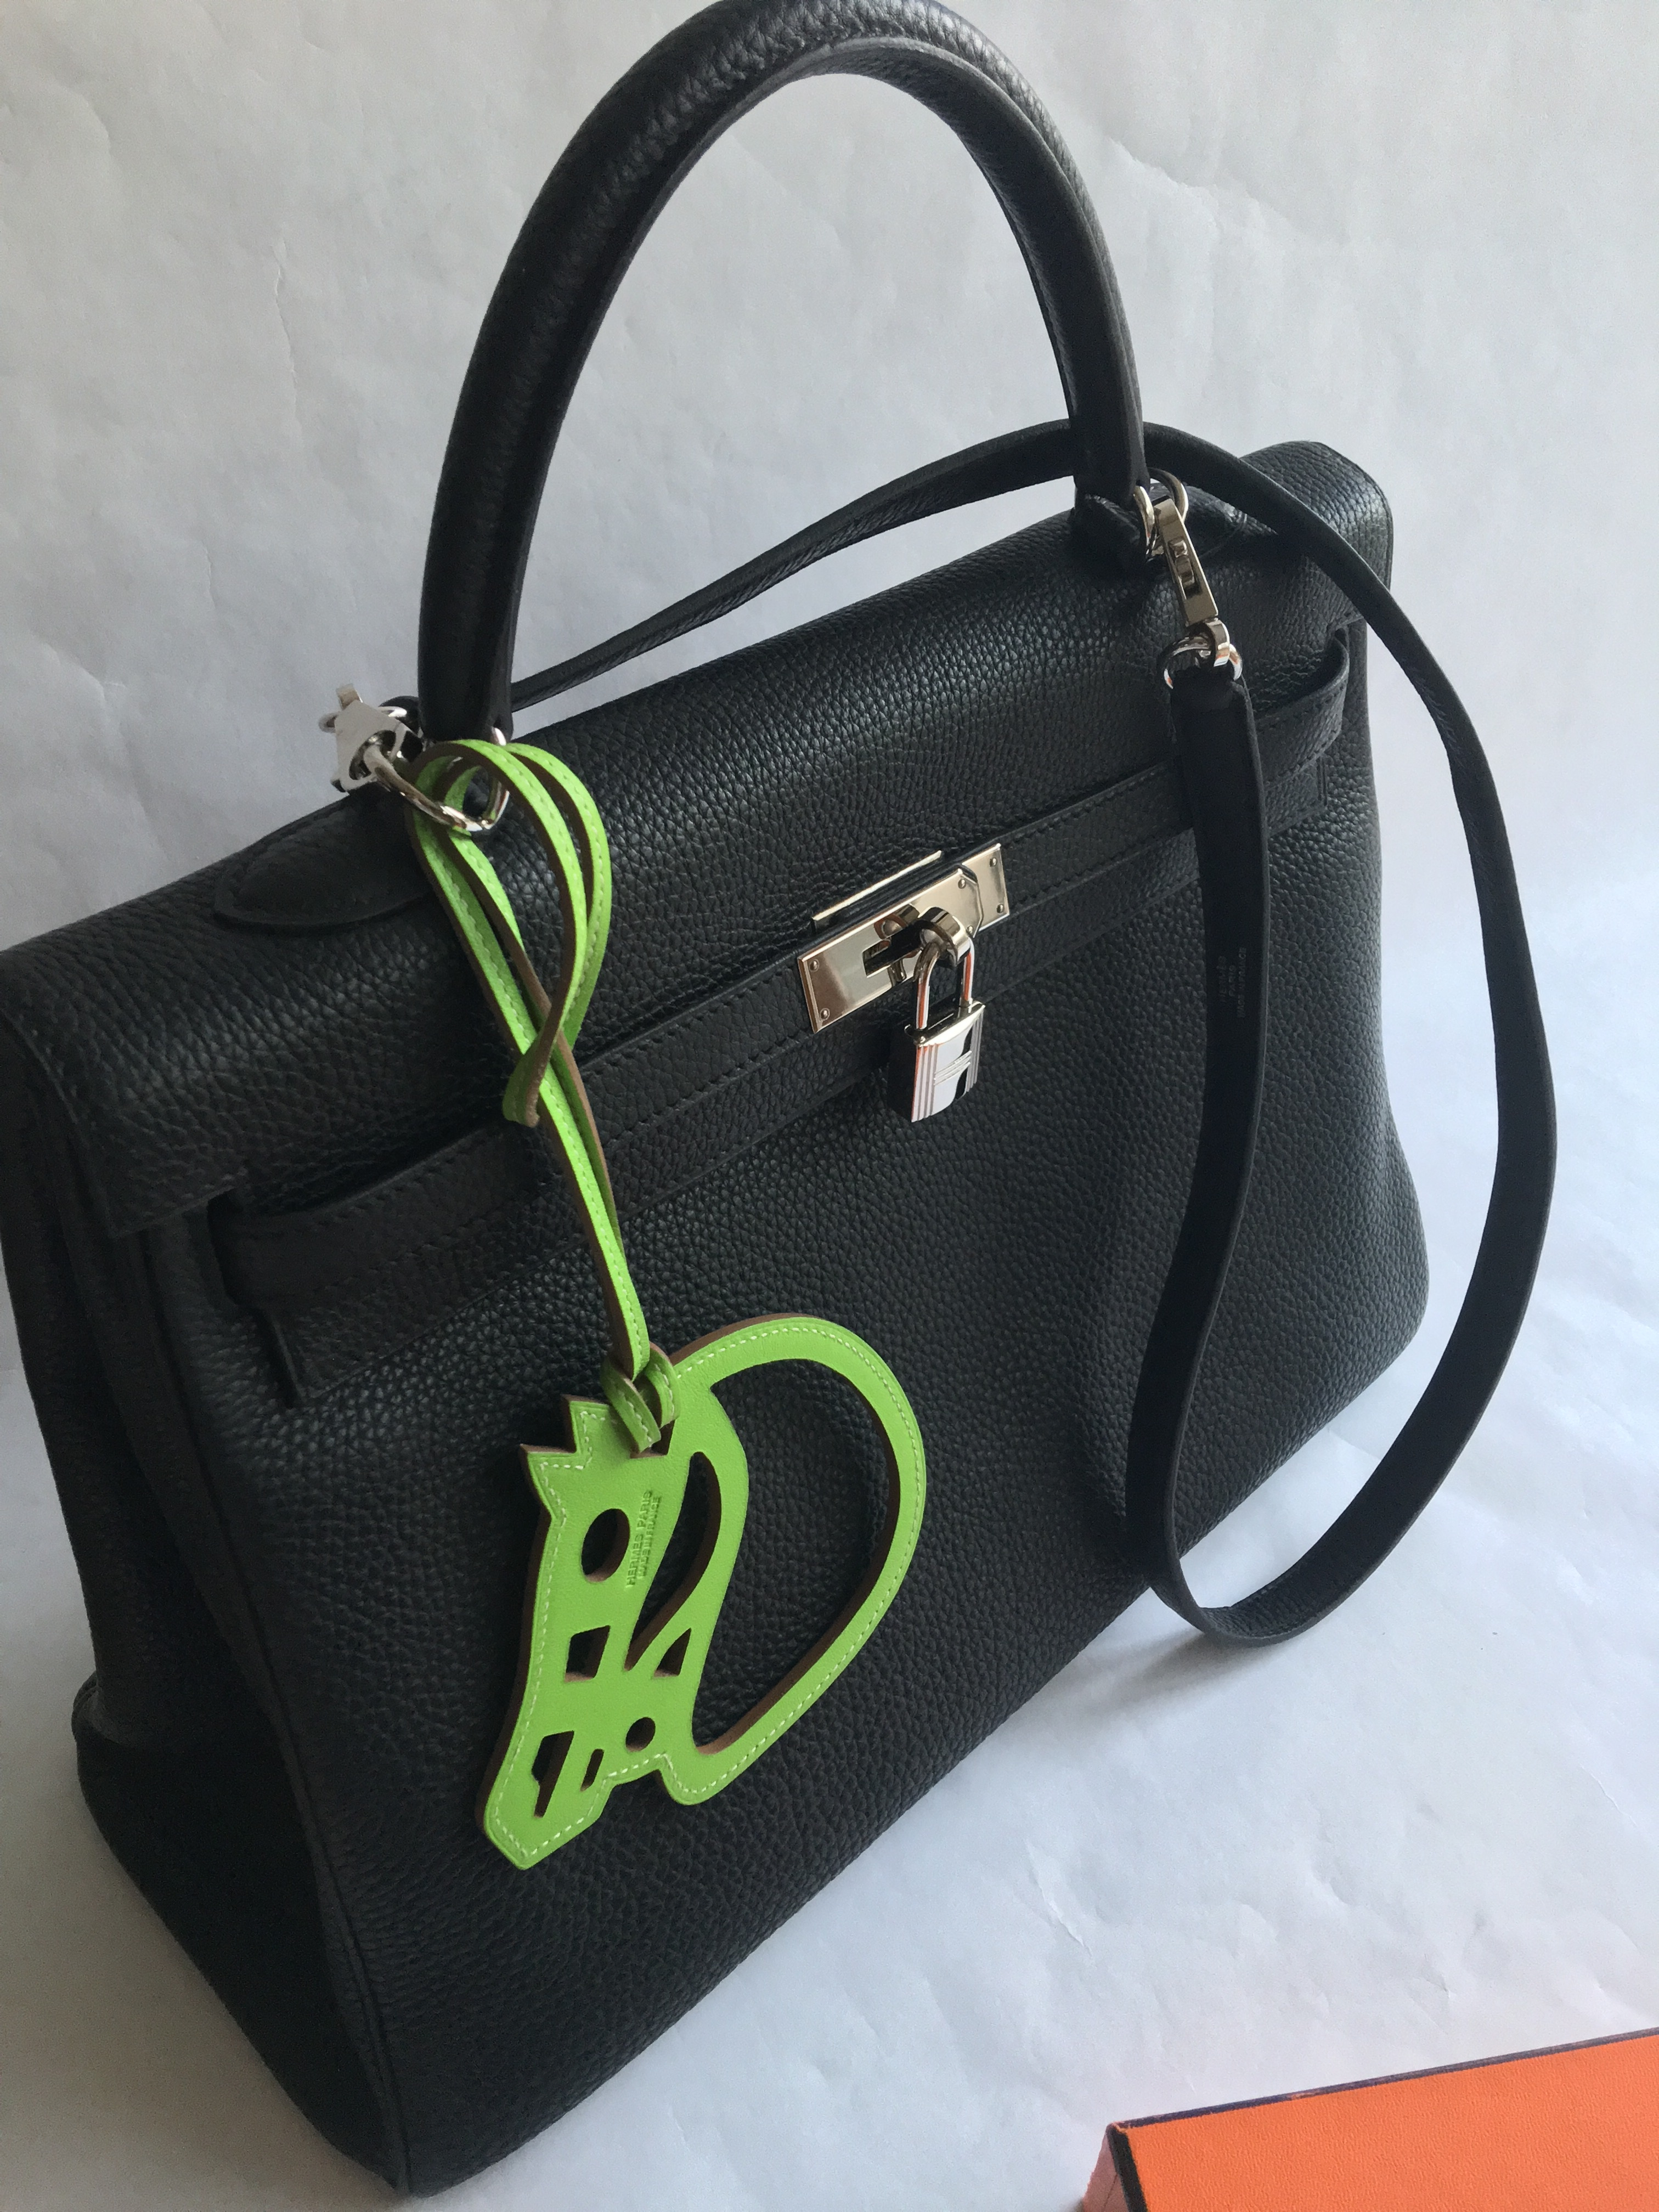 afa4726eef Authentic HERMES Paddock Cheval Horse Bag Charm Swift Lime for Kelly    Birkin – SANDIA EXCHANGE